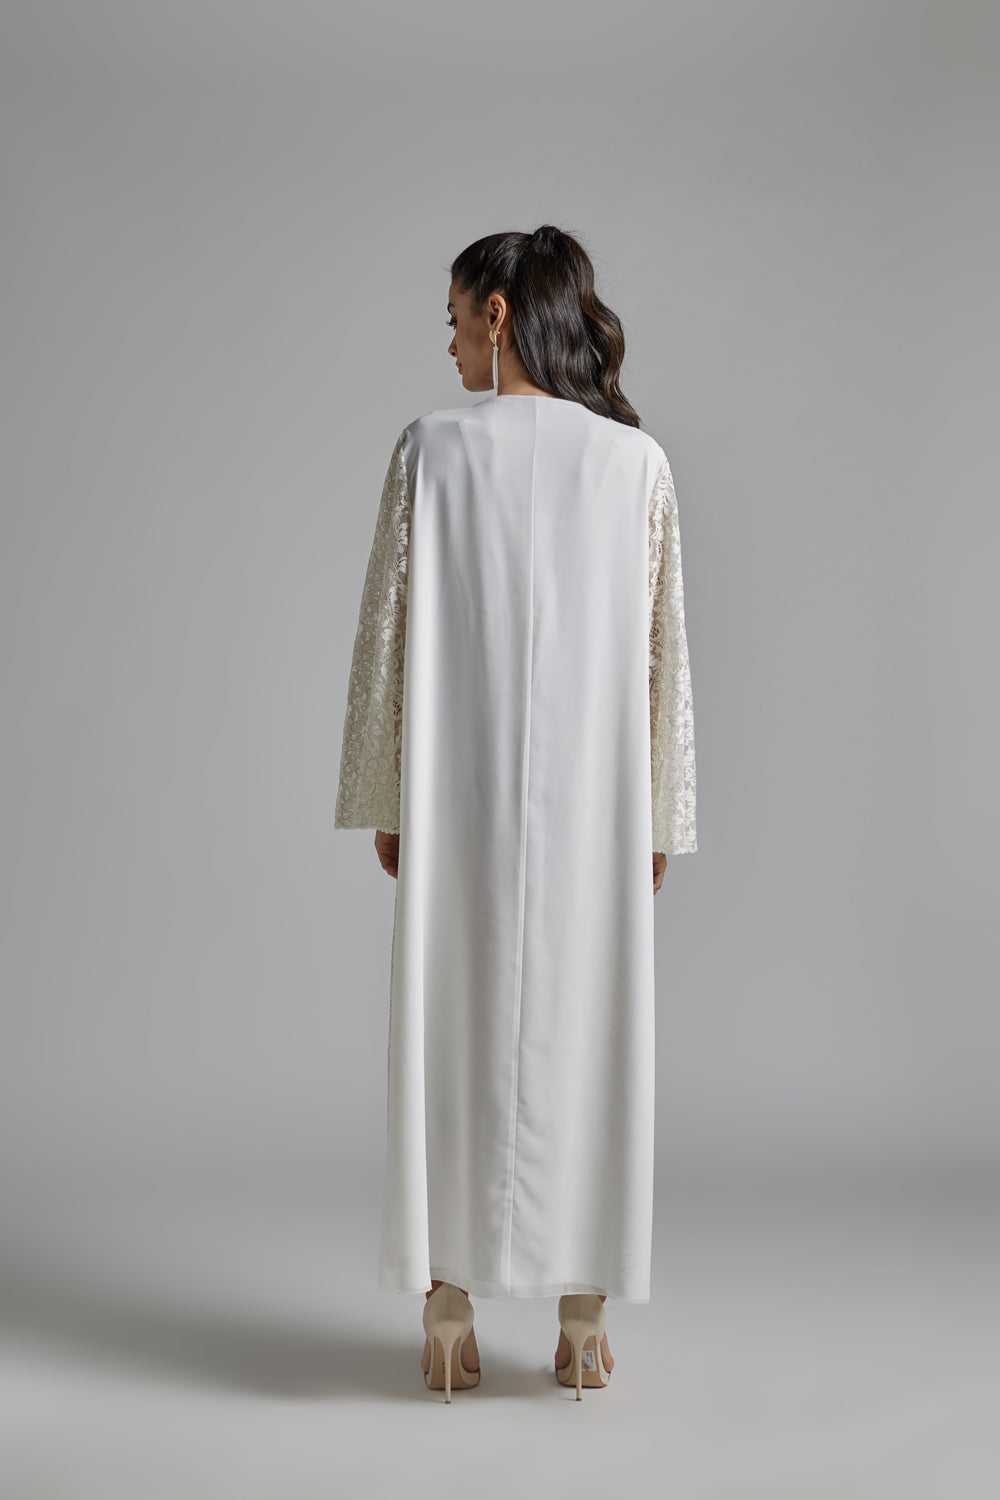 Nightgown Off White and Gold - Lizy